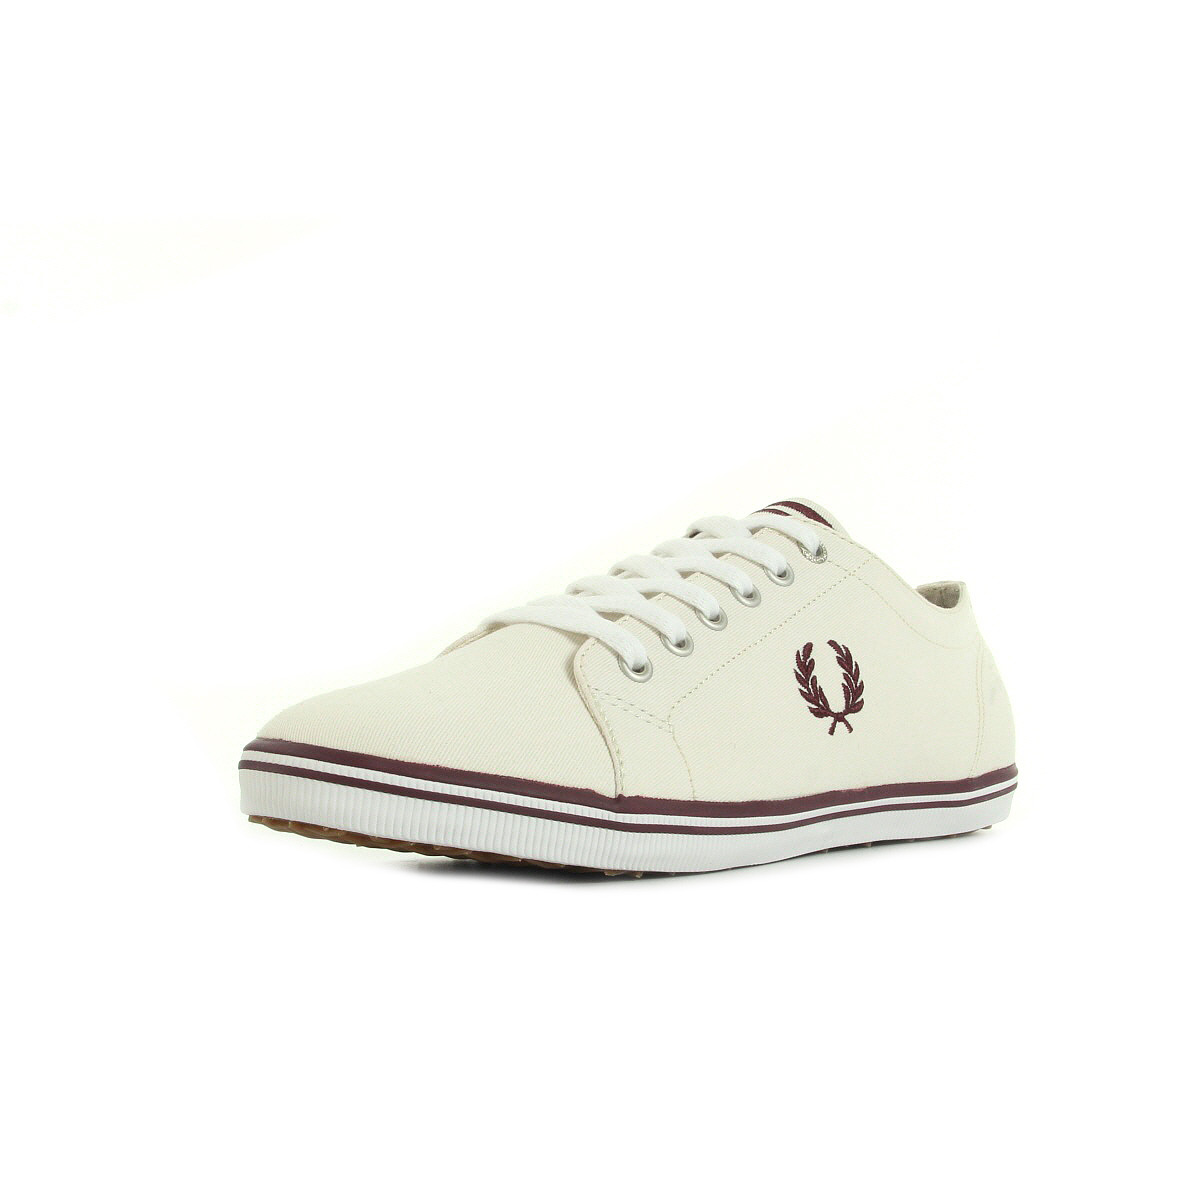 fred perry kingston twill porcelain b6259u254 chaussures homme homme. Black Bedroom Furniture Sets. Home Design Ideas